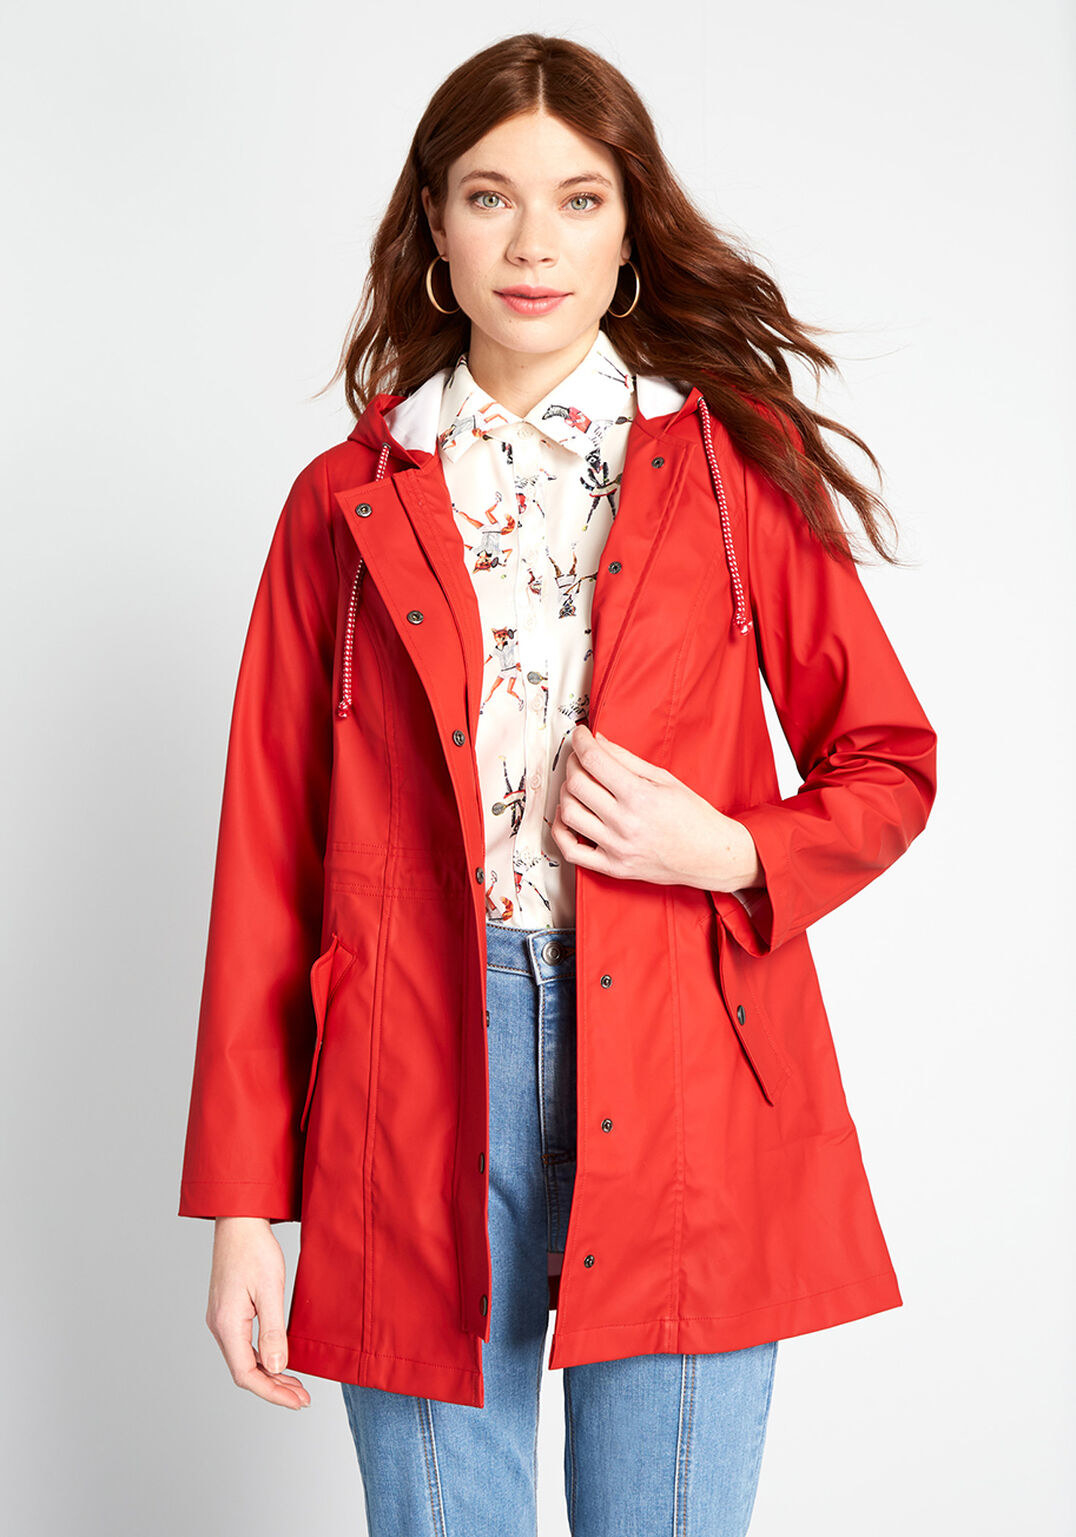 model wearing the midi length red coat